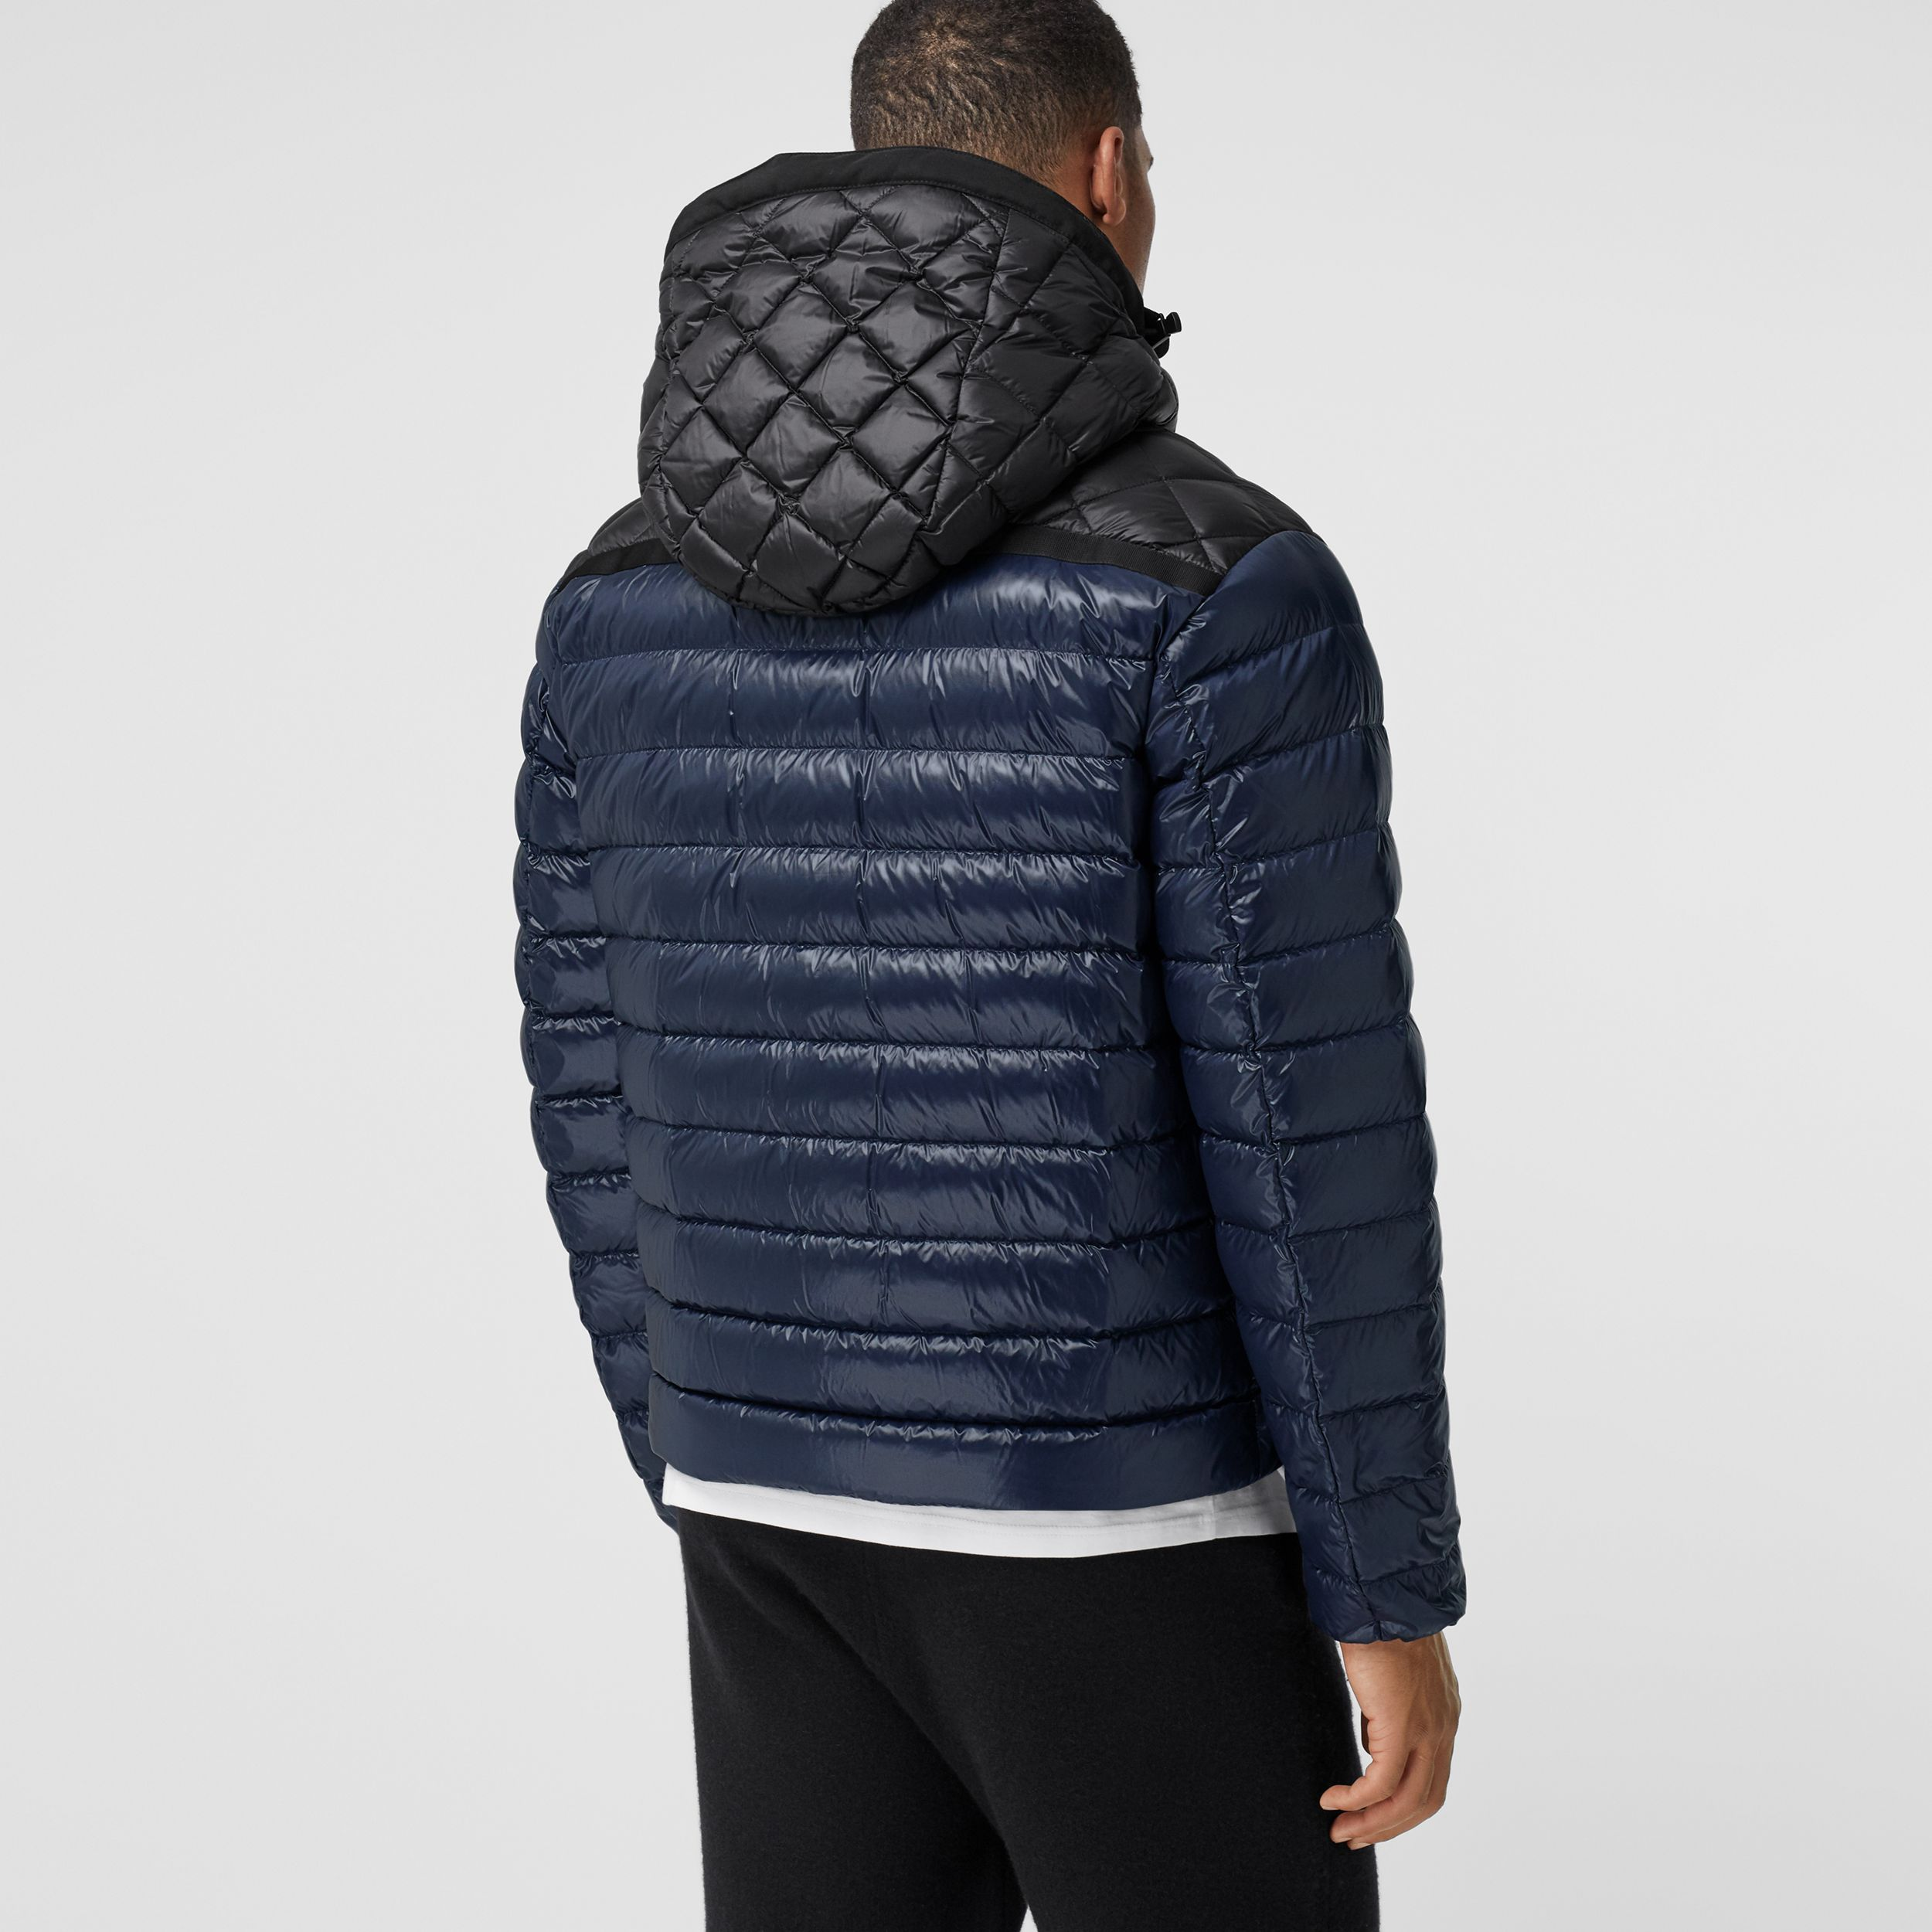 Diamond Quilted Panel Hooded Puffer Jacket in Midnight - Men | Burberry - 3